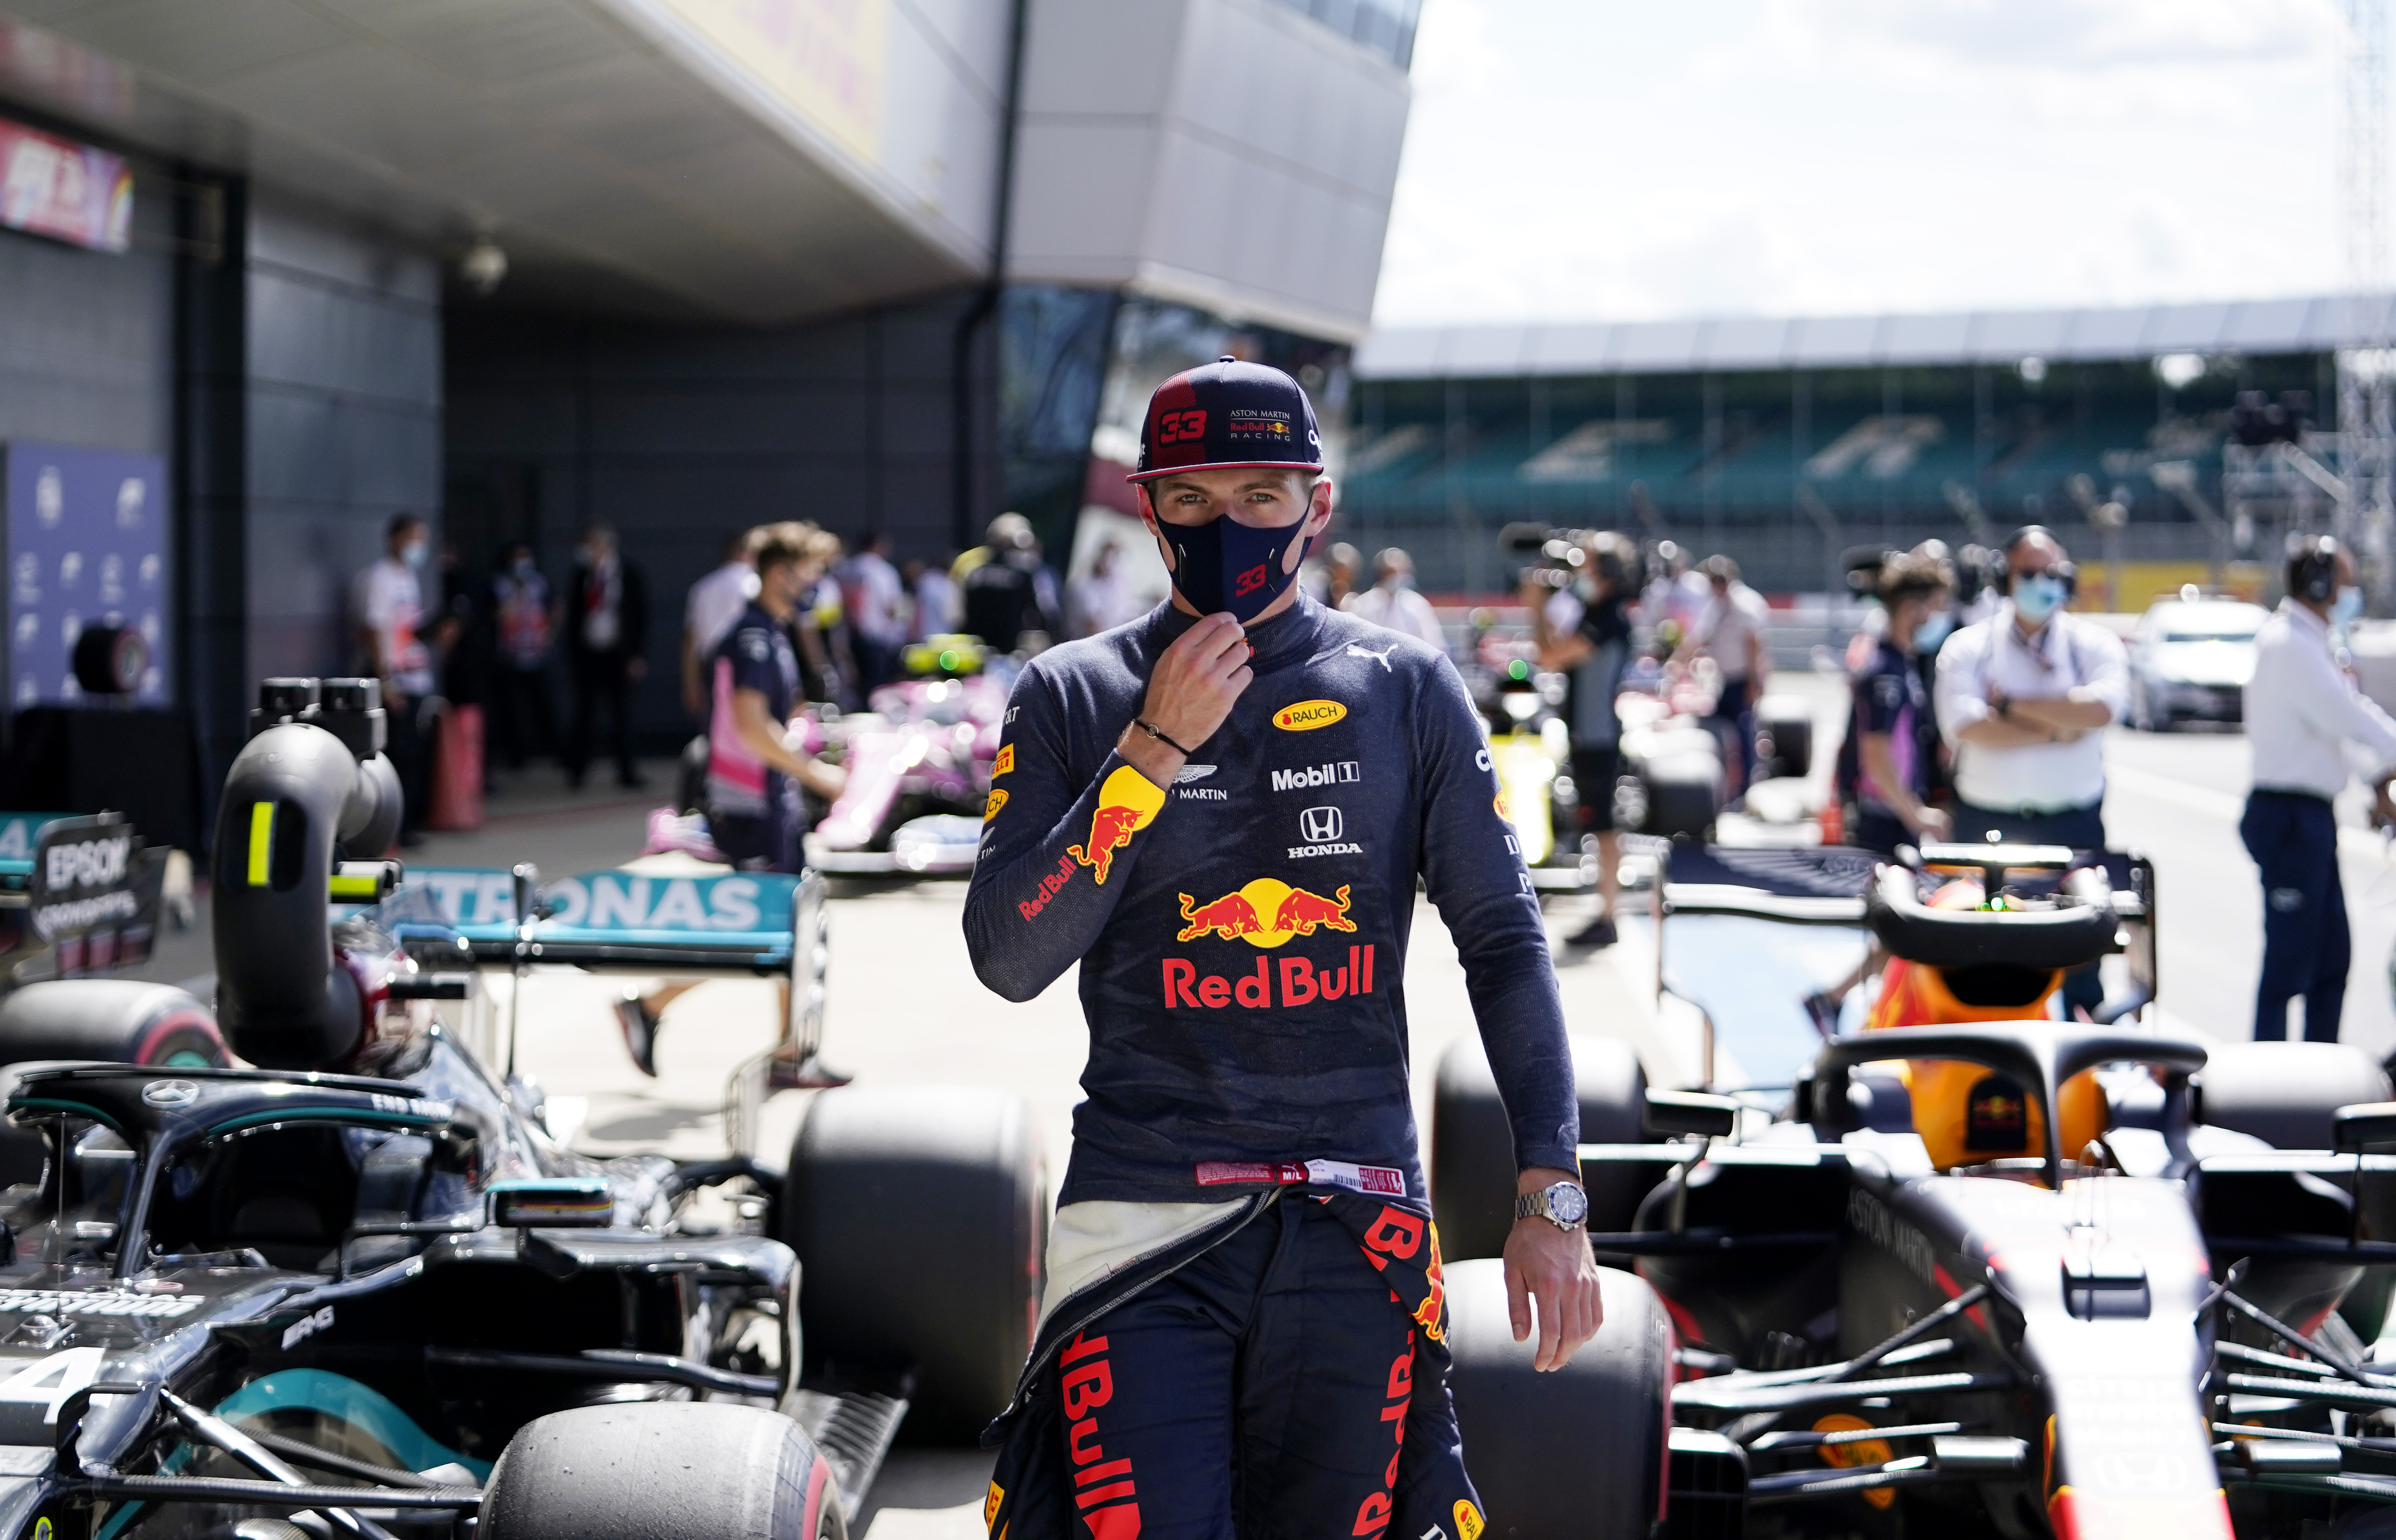 NORTHAMPTON, ENGLAND - AUGUST 01: Third place qualifier Max Verstappen of Netherlands and Red Bull Racing looks on in parc ferme during qualifying for the F1 Grand Prix of Great Britain at Silverstone on August 01, 2020 in Northampton, England. (Photo by Will Oliver/Pool via Getty Images)